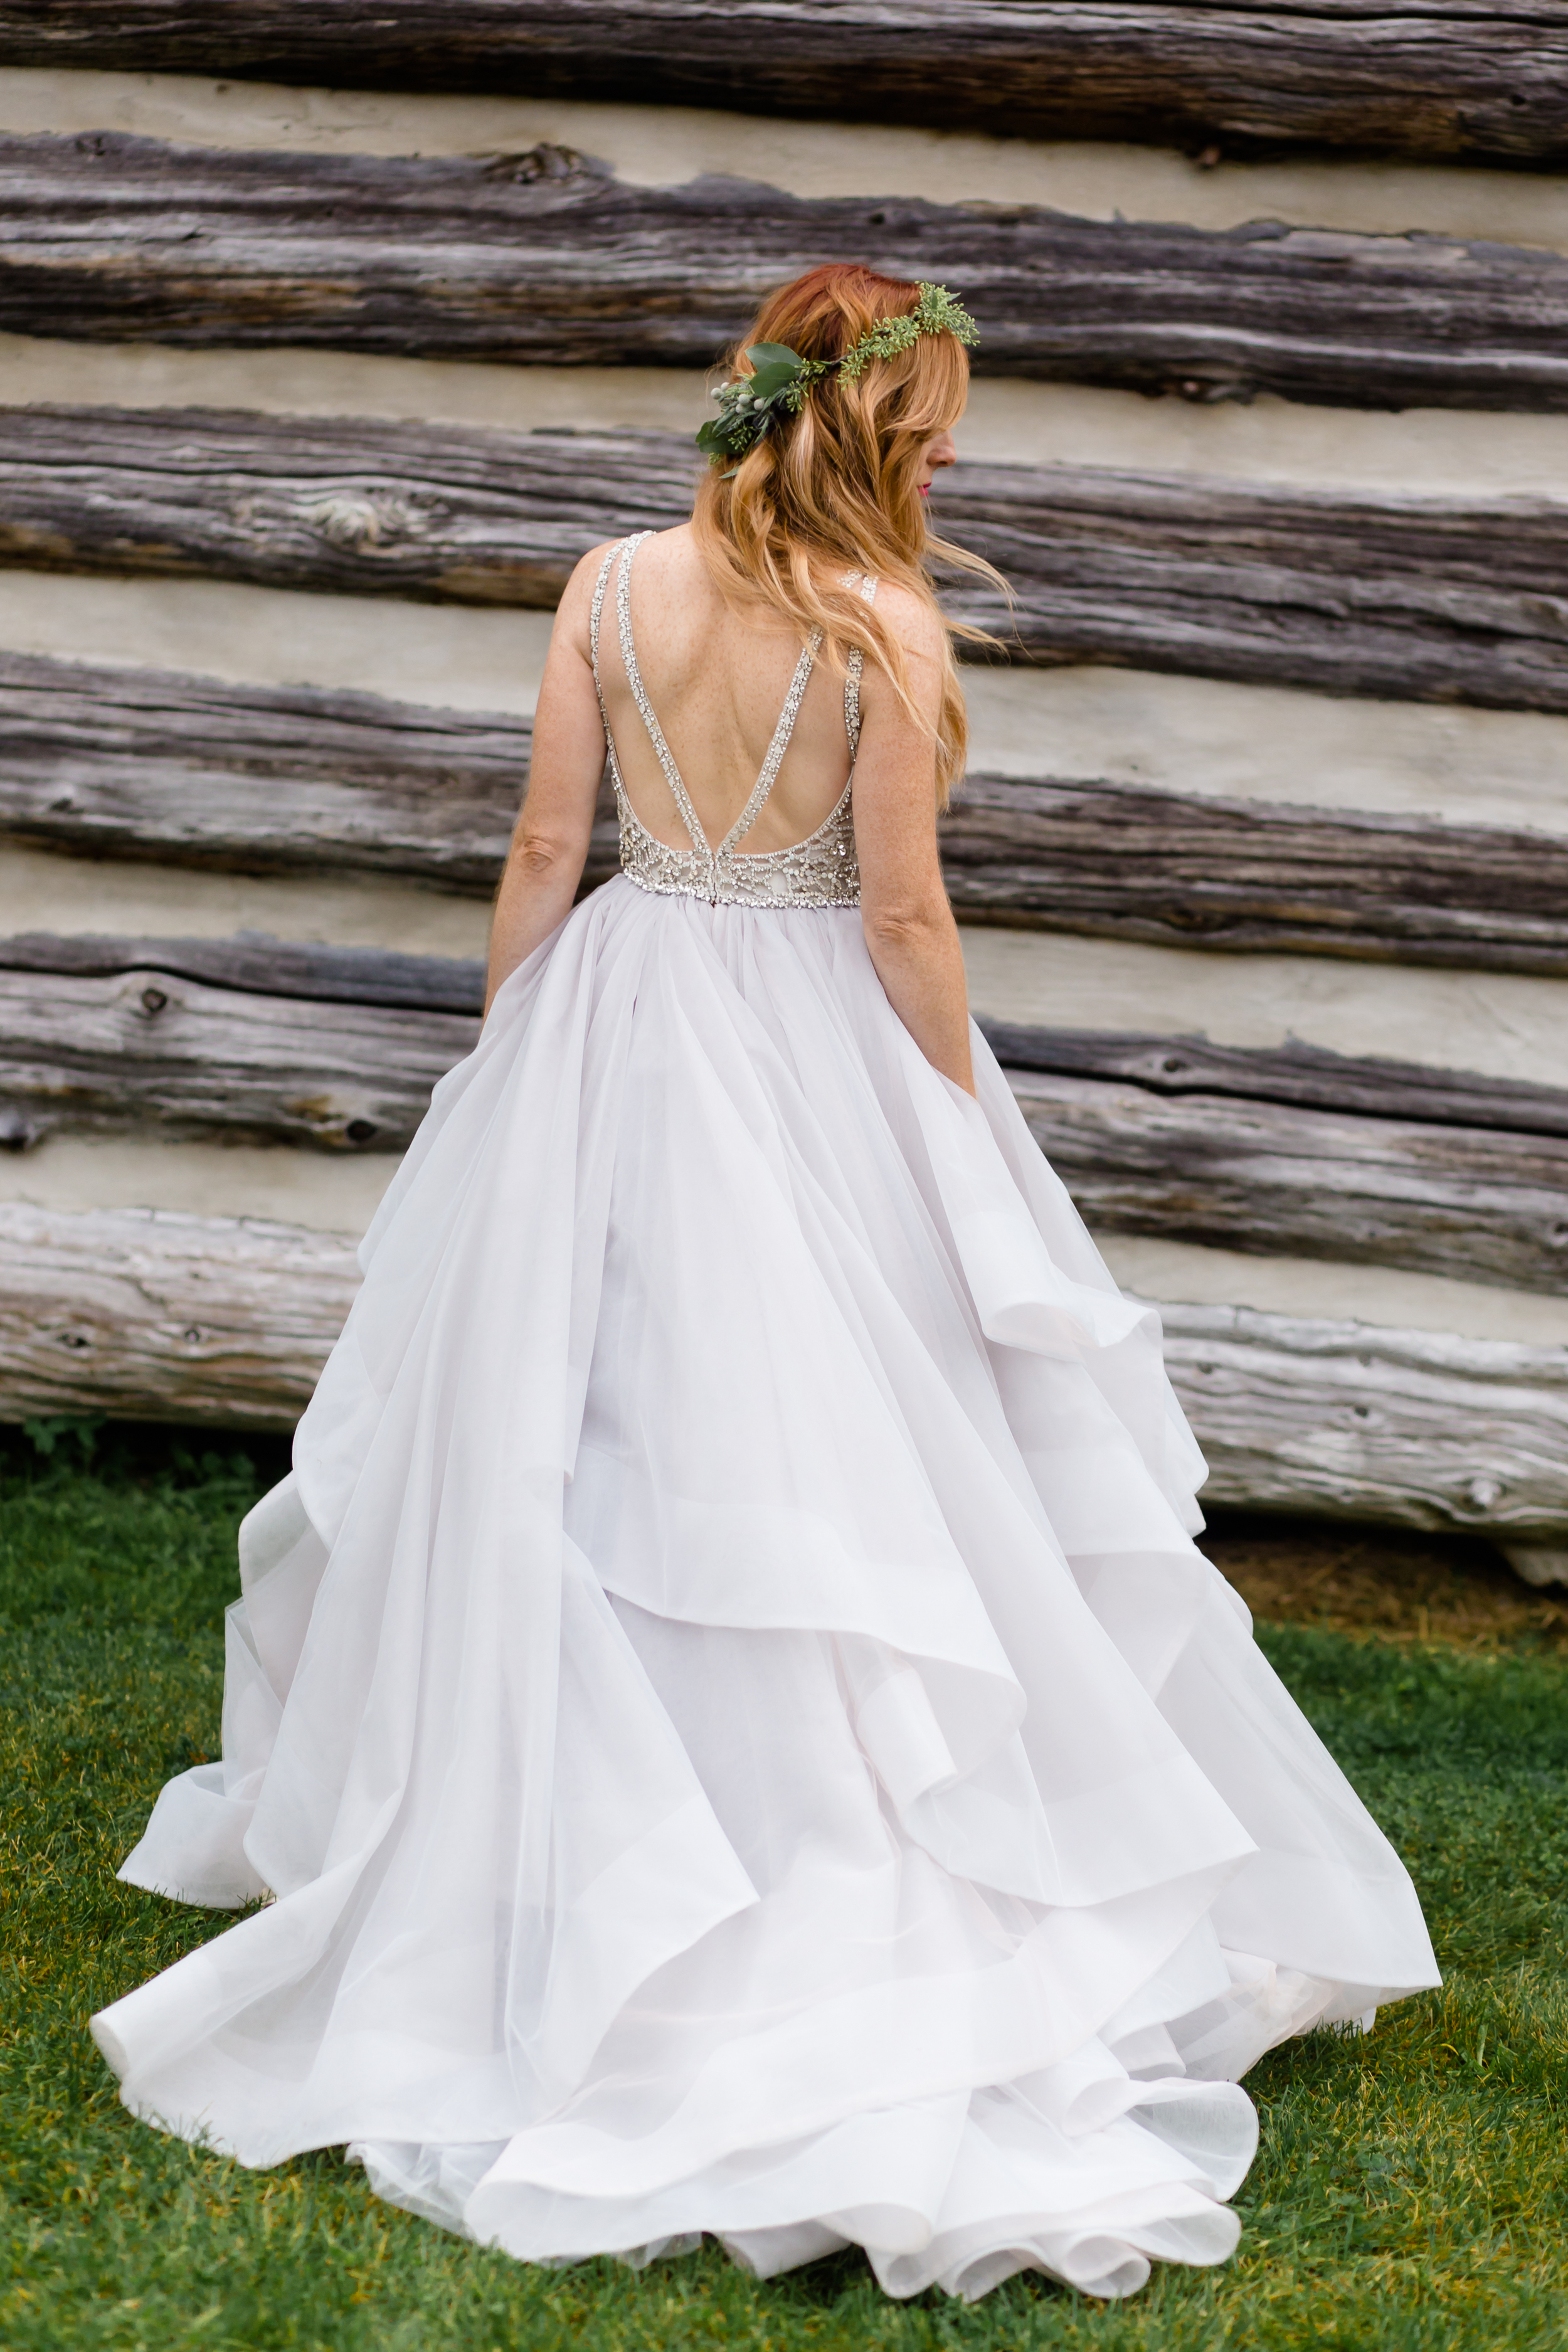 A portrait of the bride in her wedding dress